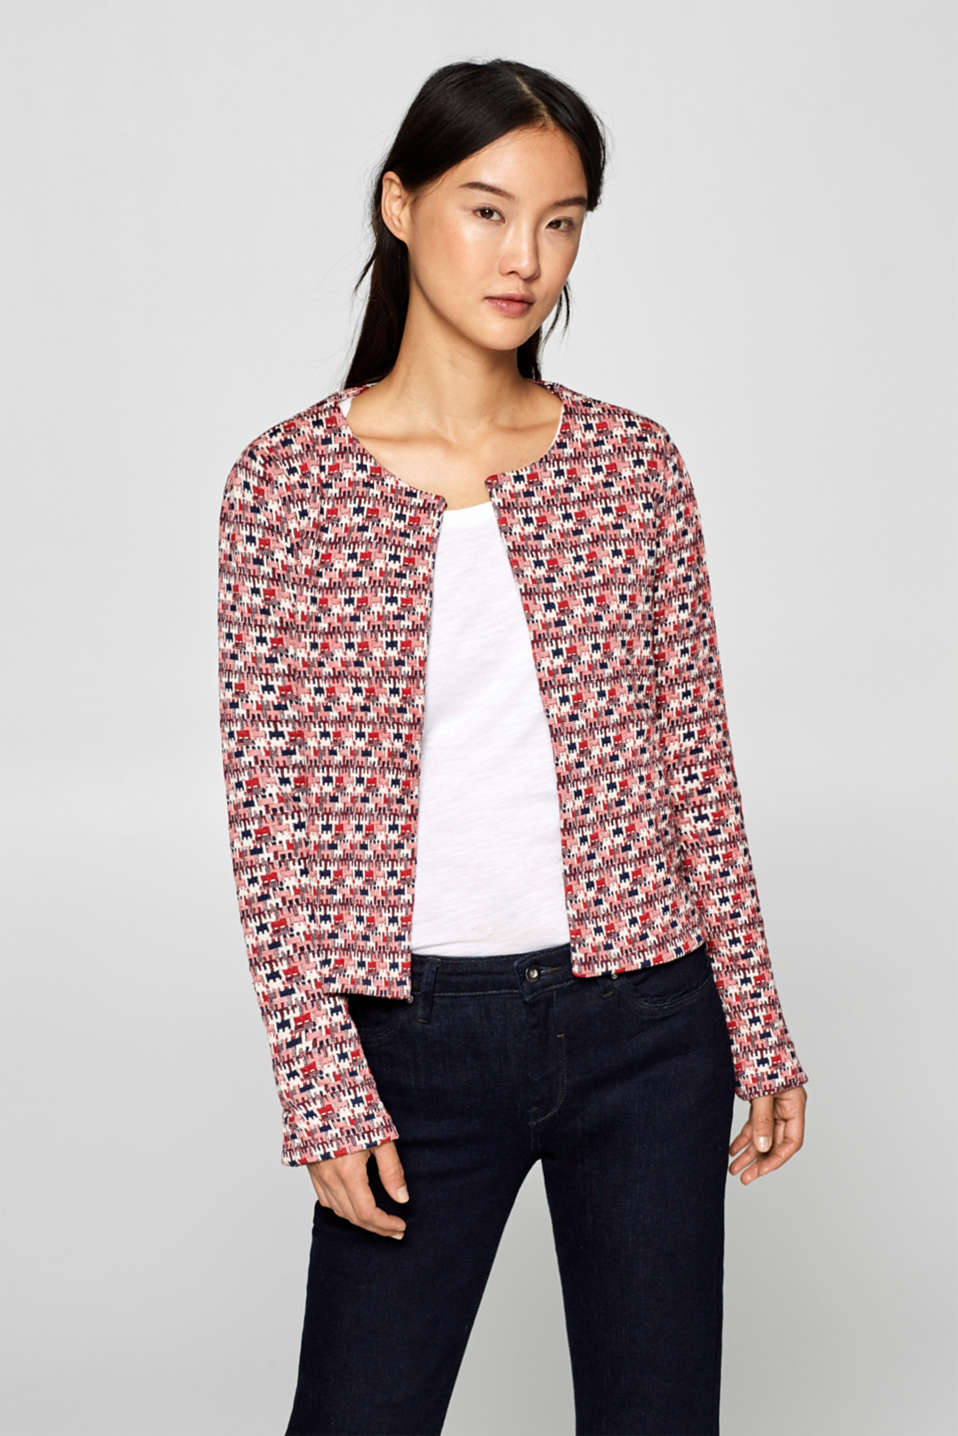 Esprit - Stretch jersey cardigan with a jacquard puzzle pattern